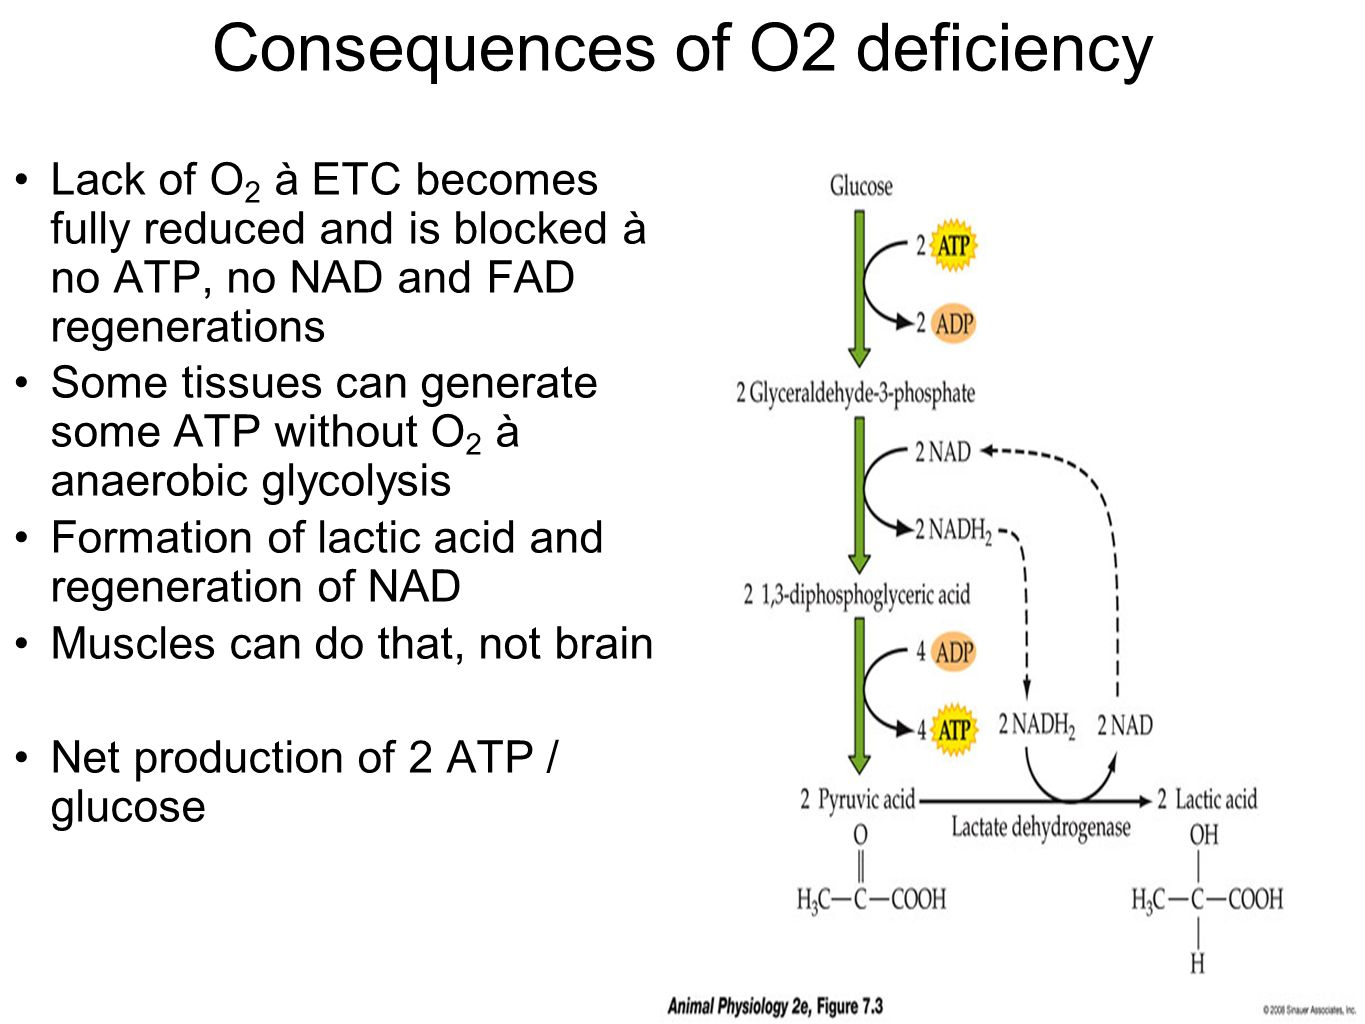 Consequences of O2 deficiency